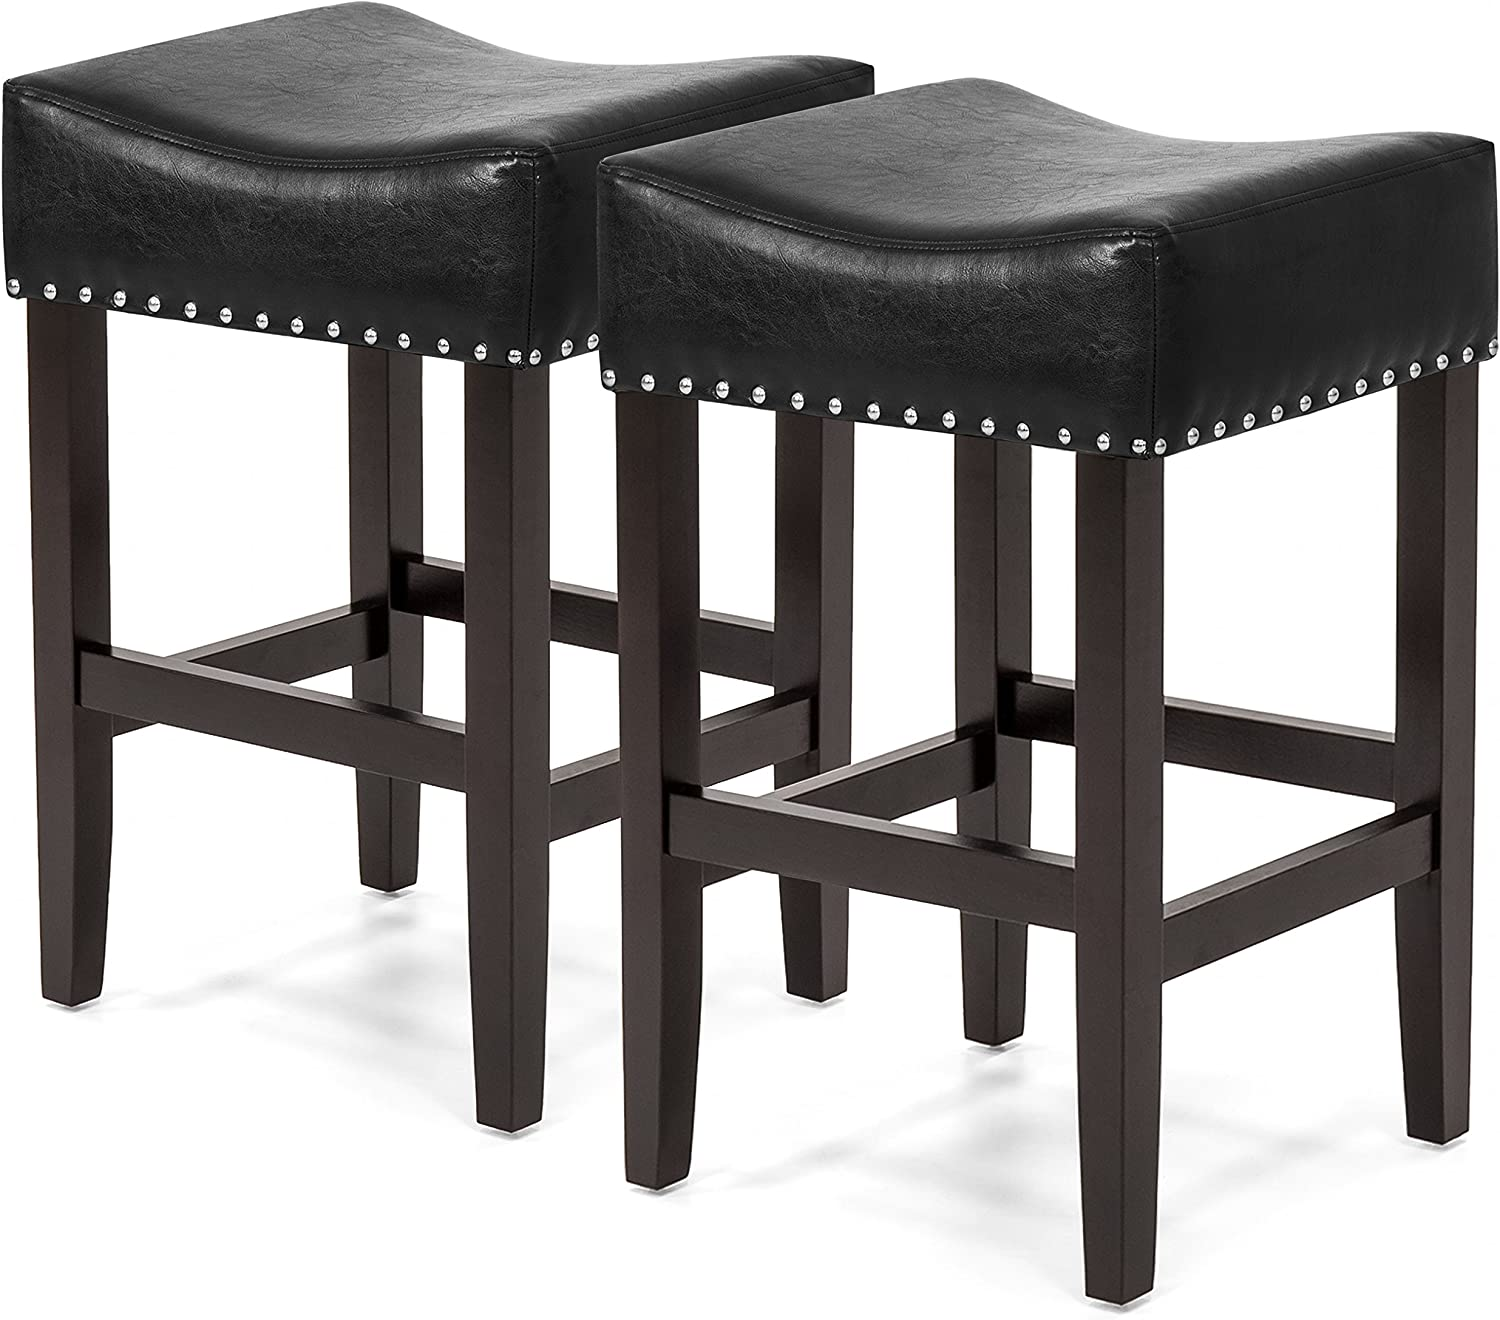 Best Choice Products 26in Faux Leather Upholstered Counter Stools w Wooden Base and Silver Nailhead Trim, Set of 2, Black